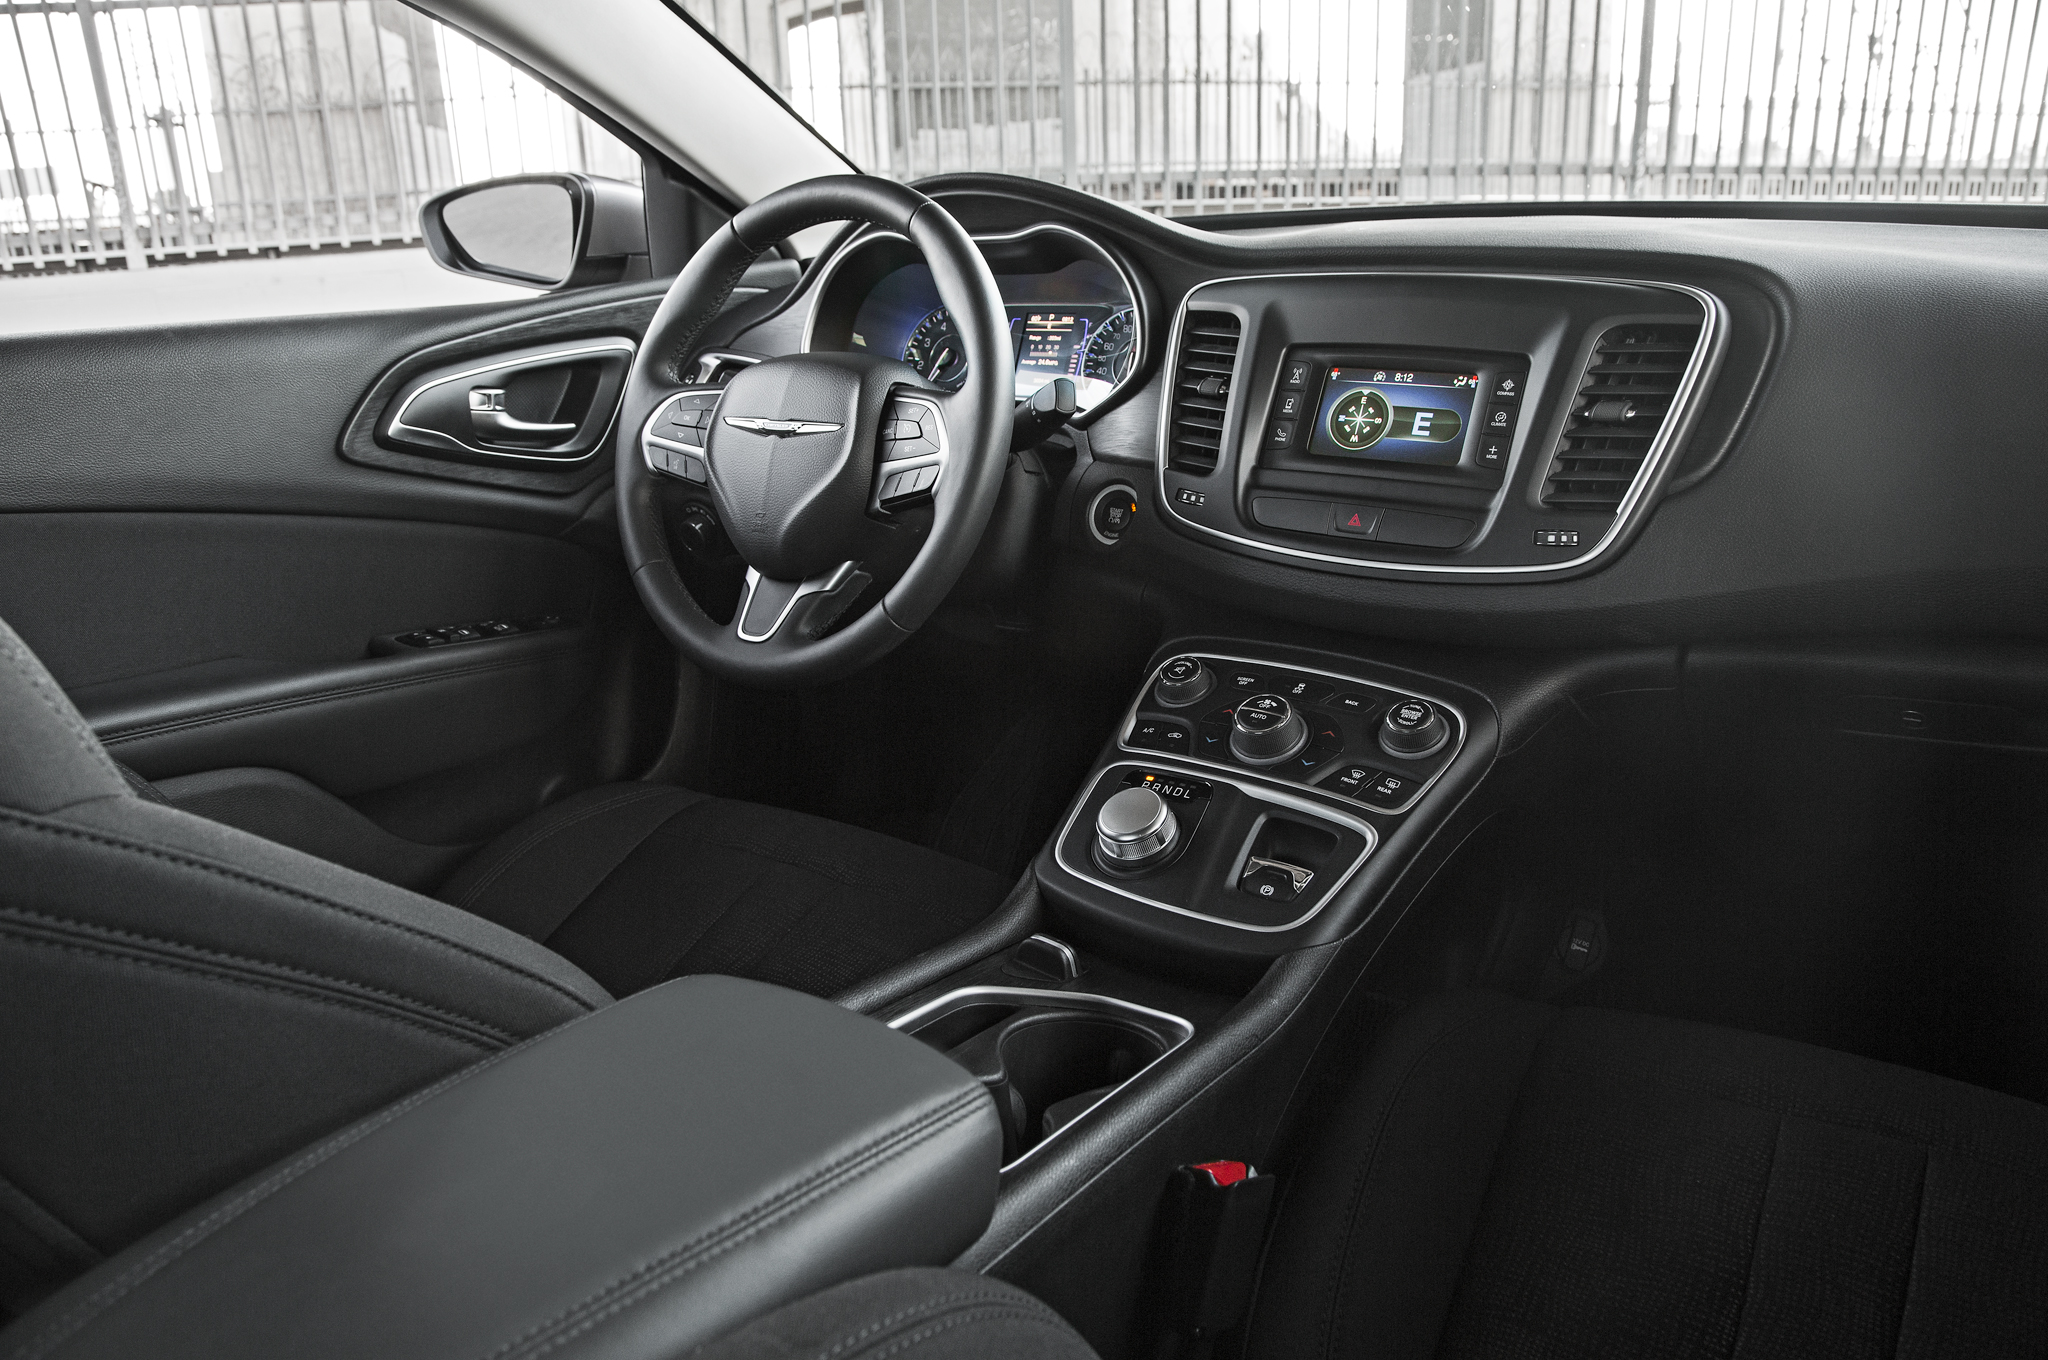 2015 Chrysler 200 Dashboard And Cockpit (View 6 of 11)